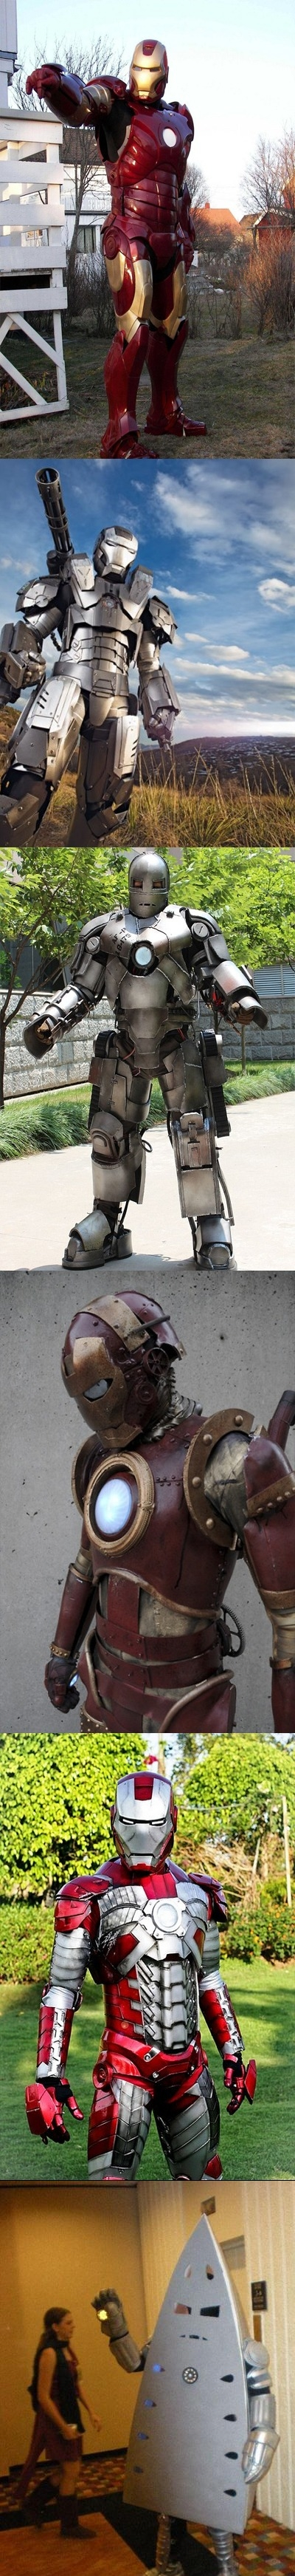 Iron Man Cosplay Win!